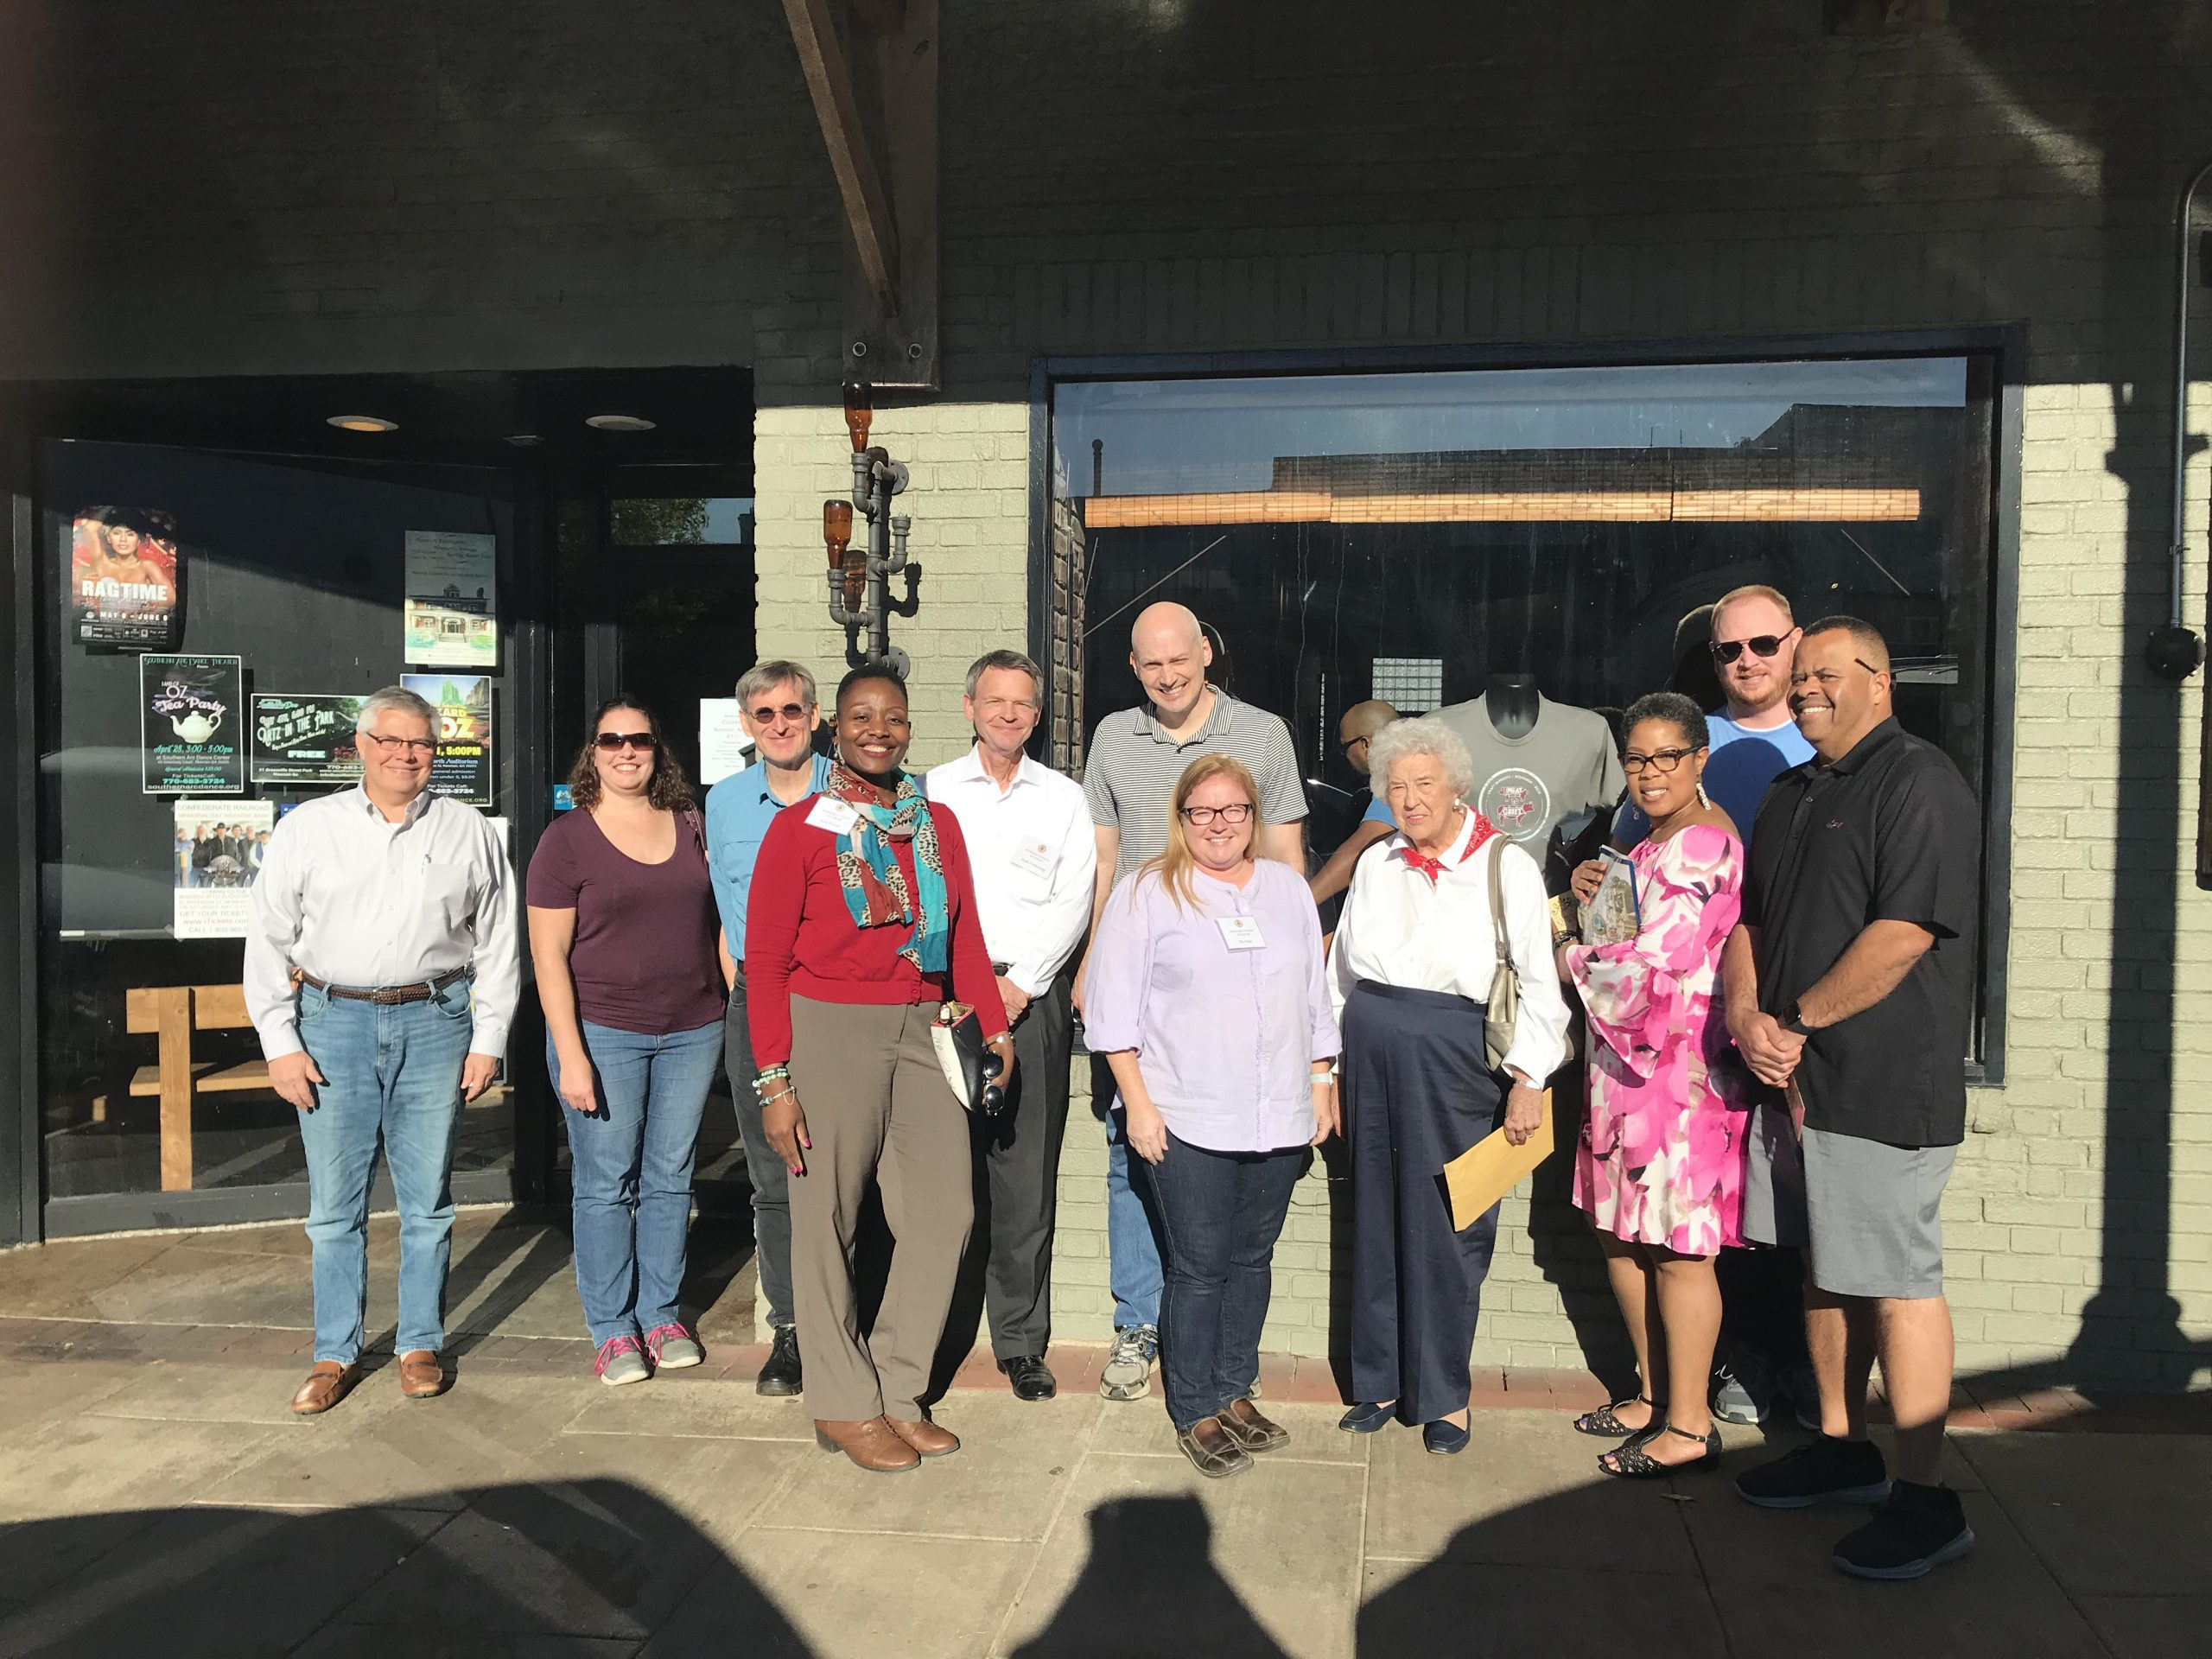 A photo of the 2019 Newnan Citizen Academy class with local Newnan historian, Elizabeth Beers at one of downtown Newnan's treats – Meat N' Greet